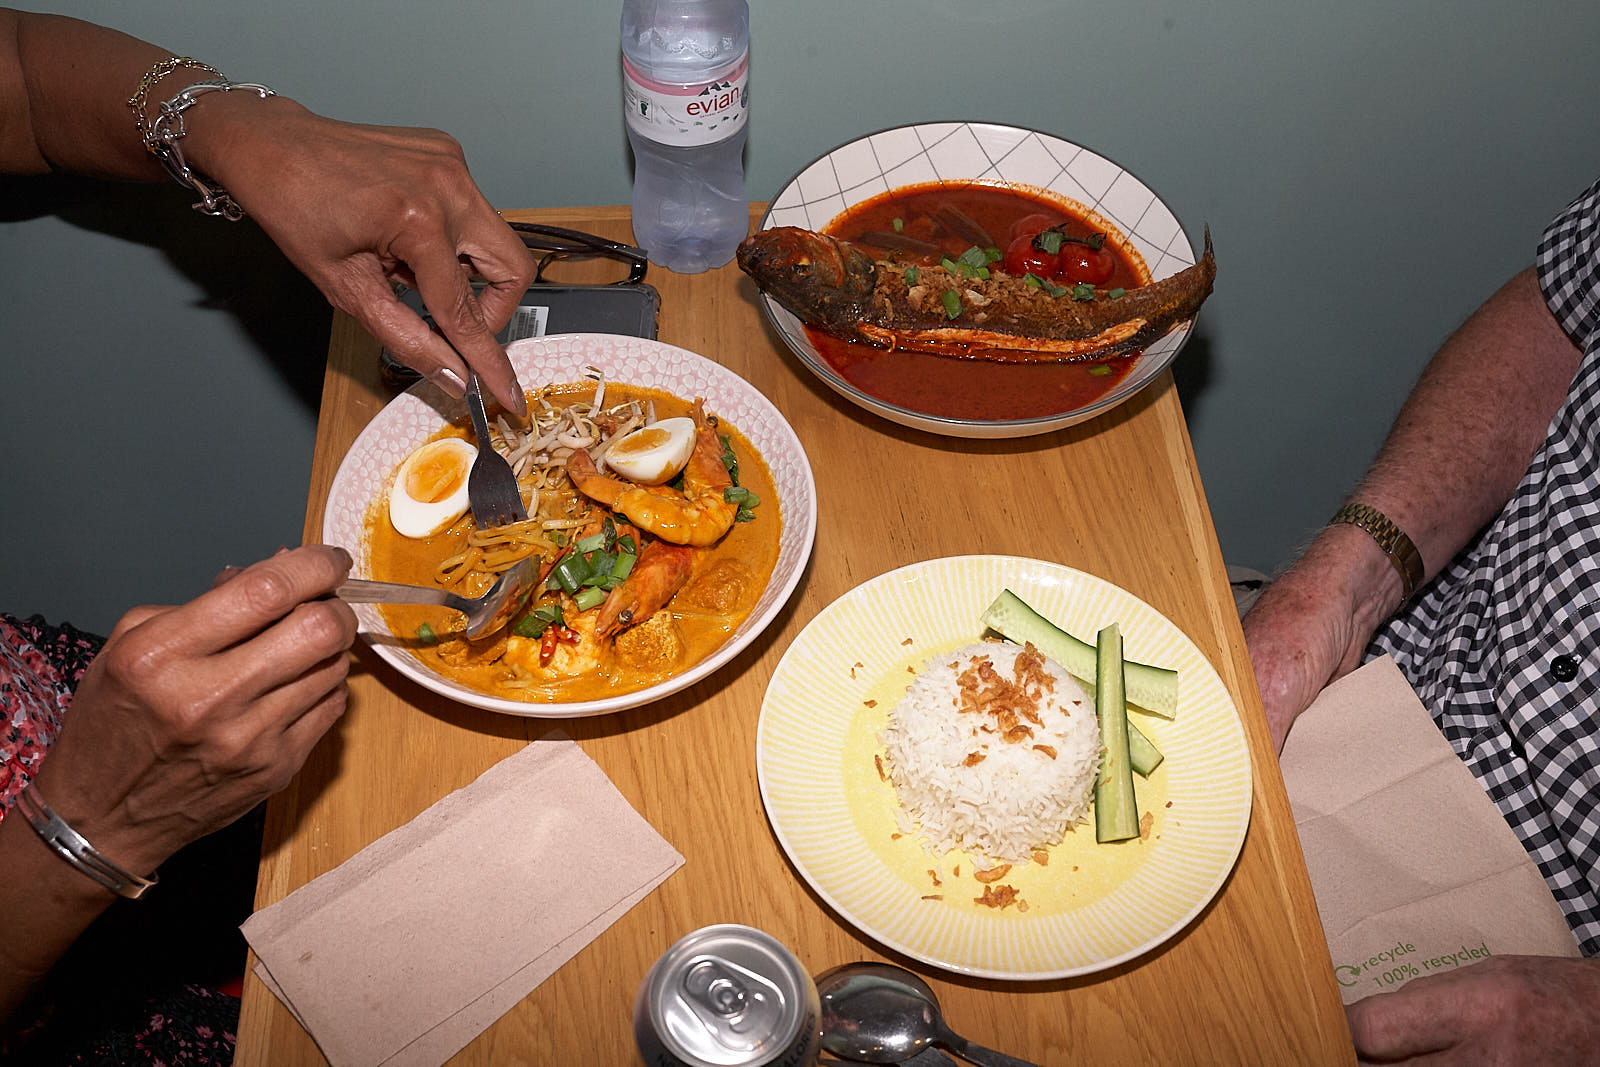 A selection of dishes at Normah's Cafe in Queensway Market, Bayswater —one of London's best-value restaurants is struggling to recover after the coronavirus pandemic forced its closure in March 2020. It reopened in August 2020.